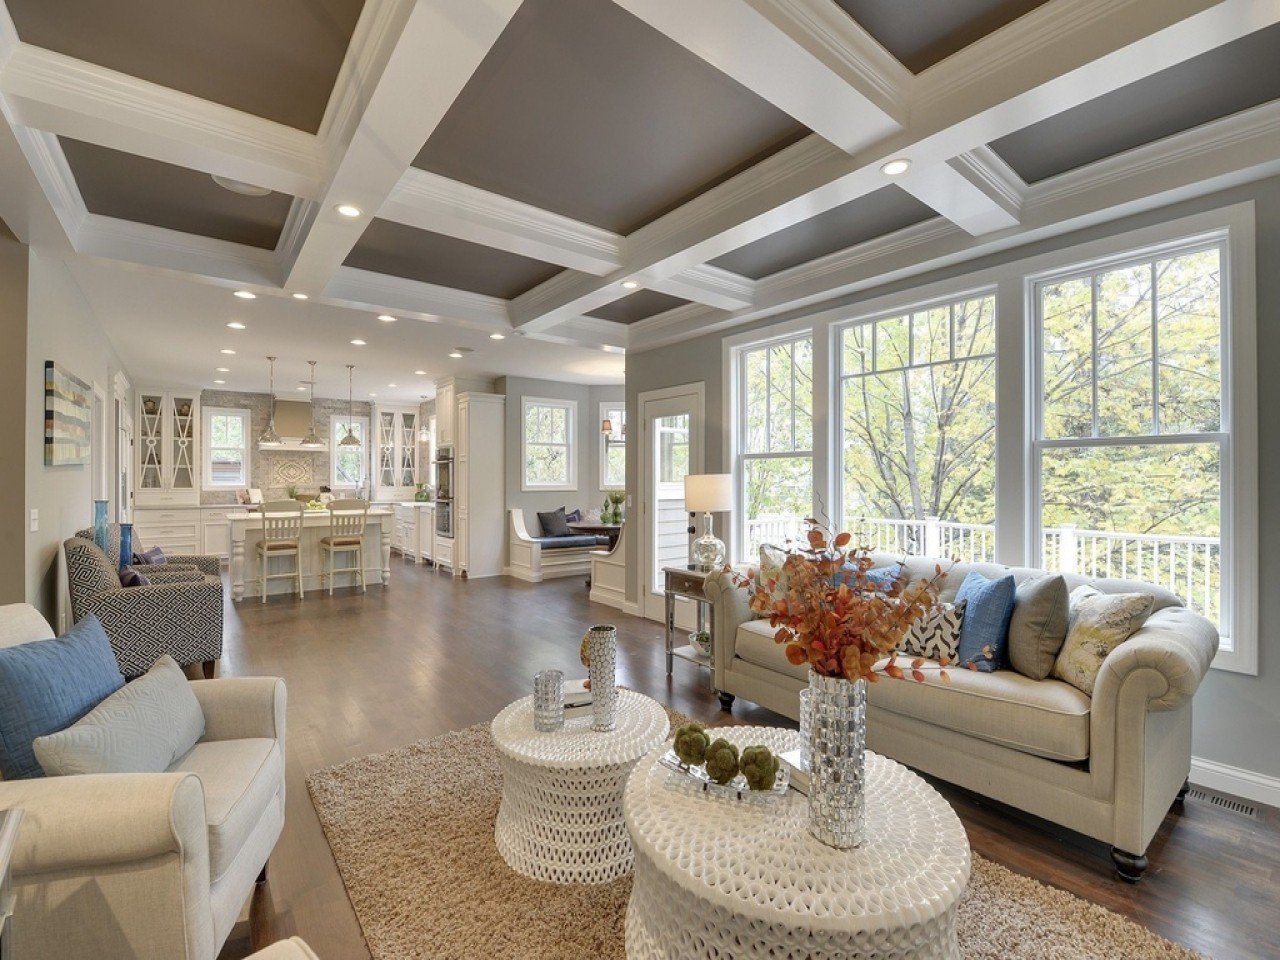 Coffered ceiling for large classic styled living room with light color scheme